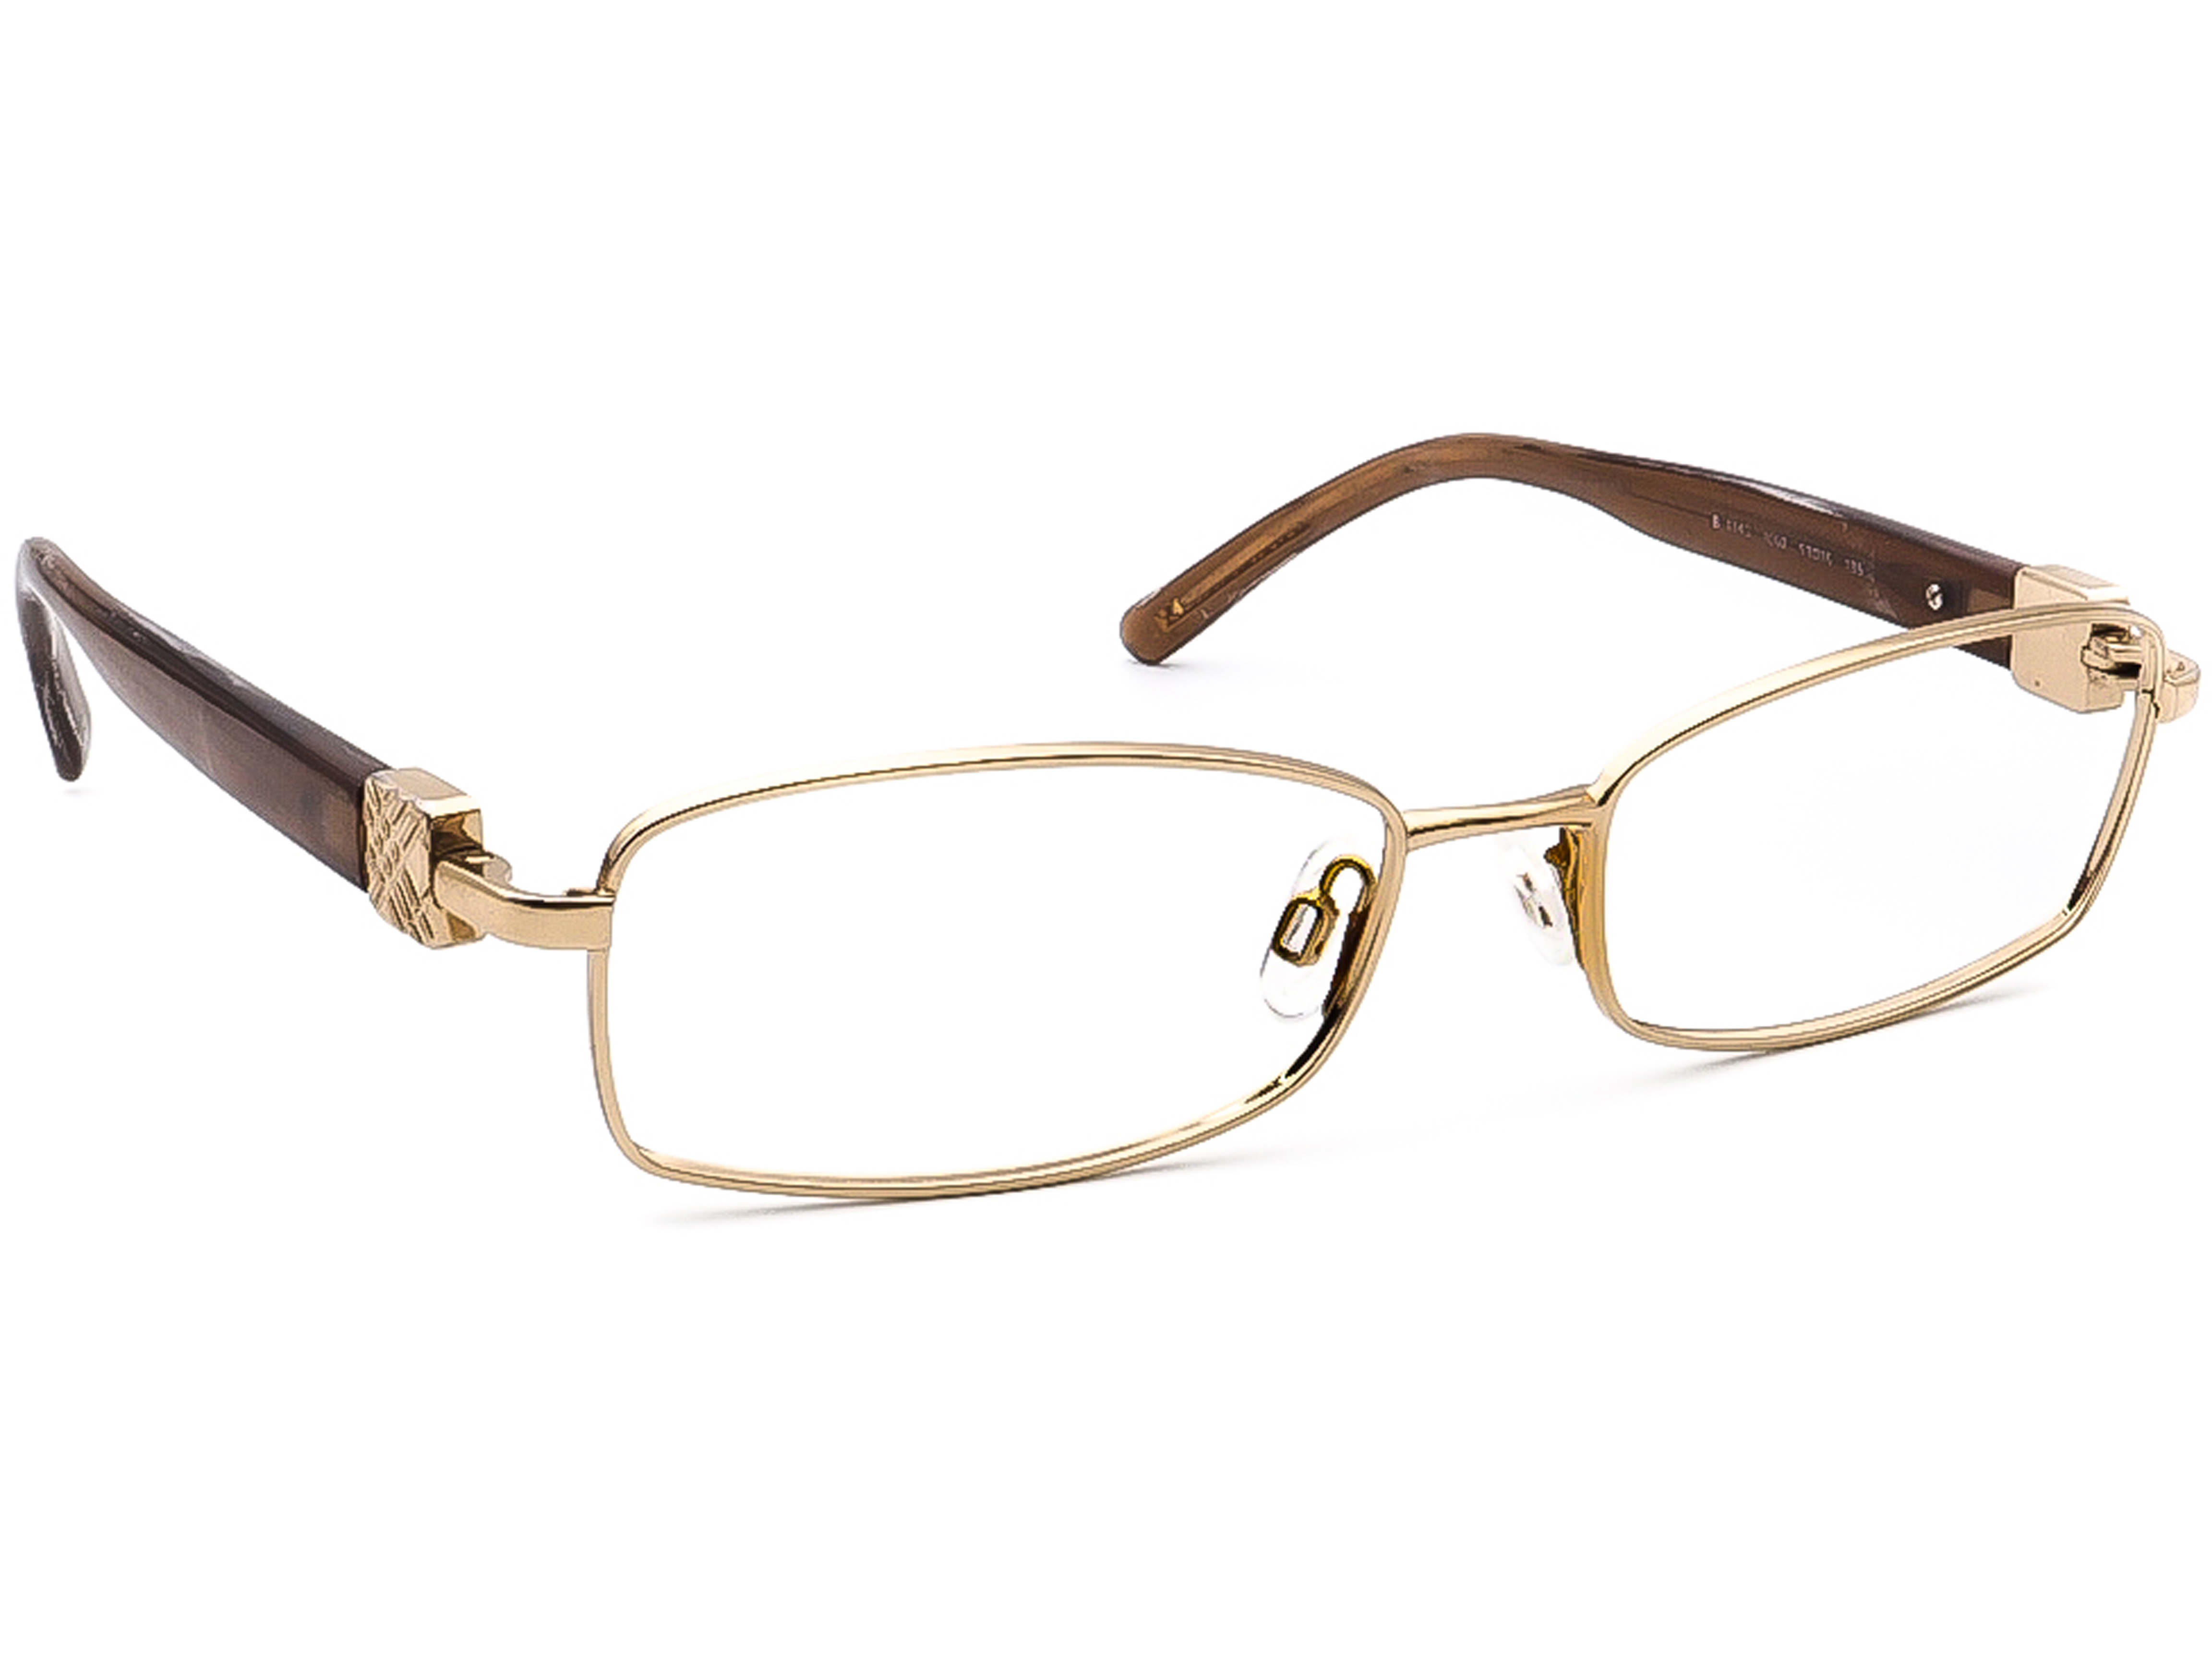 Burberry B 1145 1002 Eyeglasses